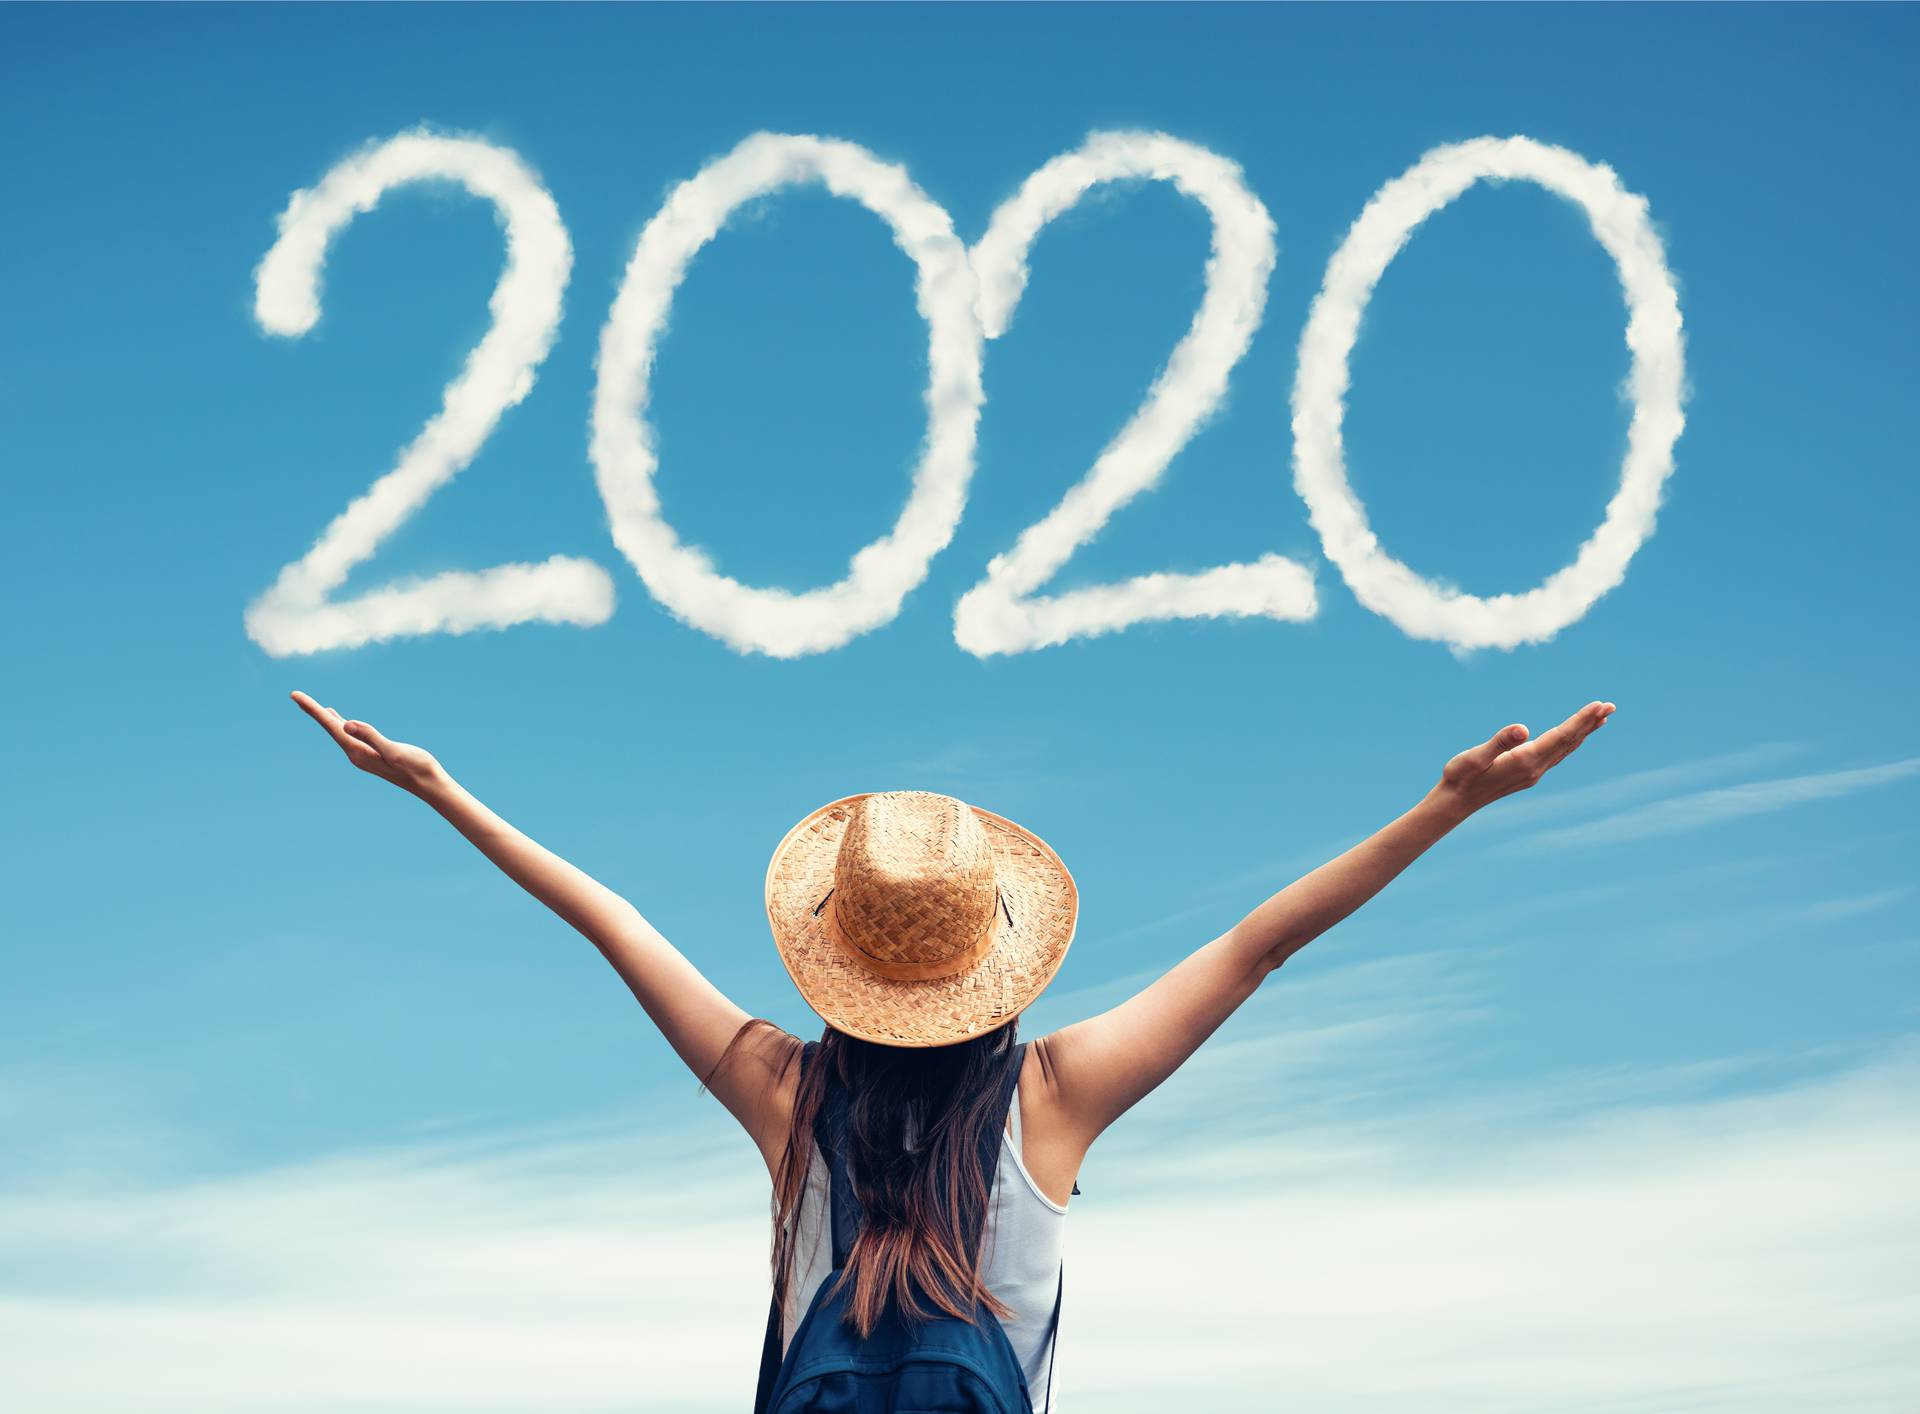 Beautiful woman greets the 2020 portrayaled with clouds